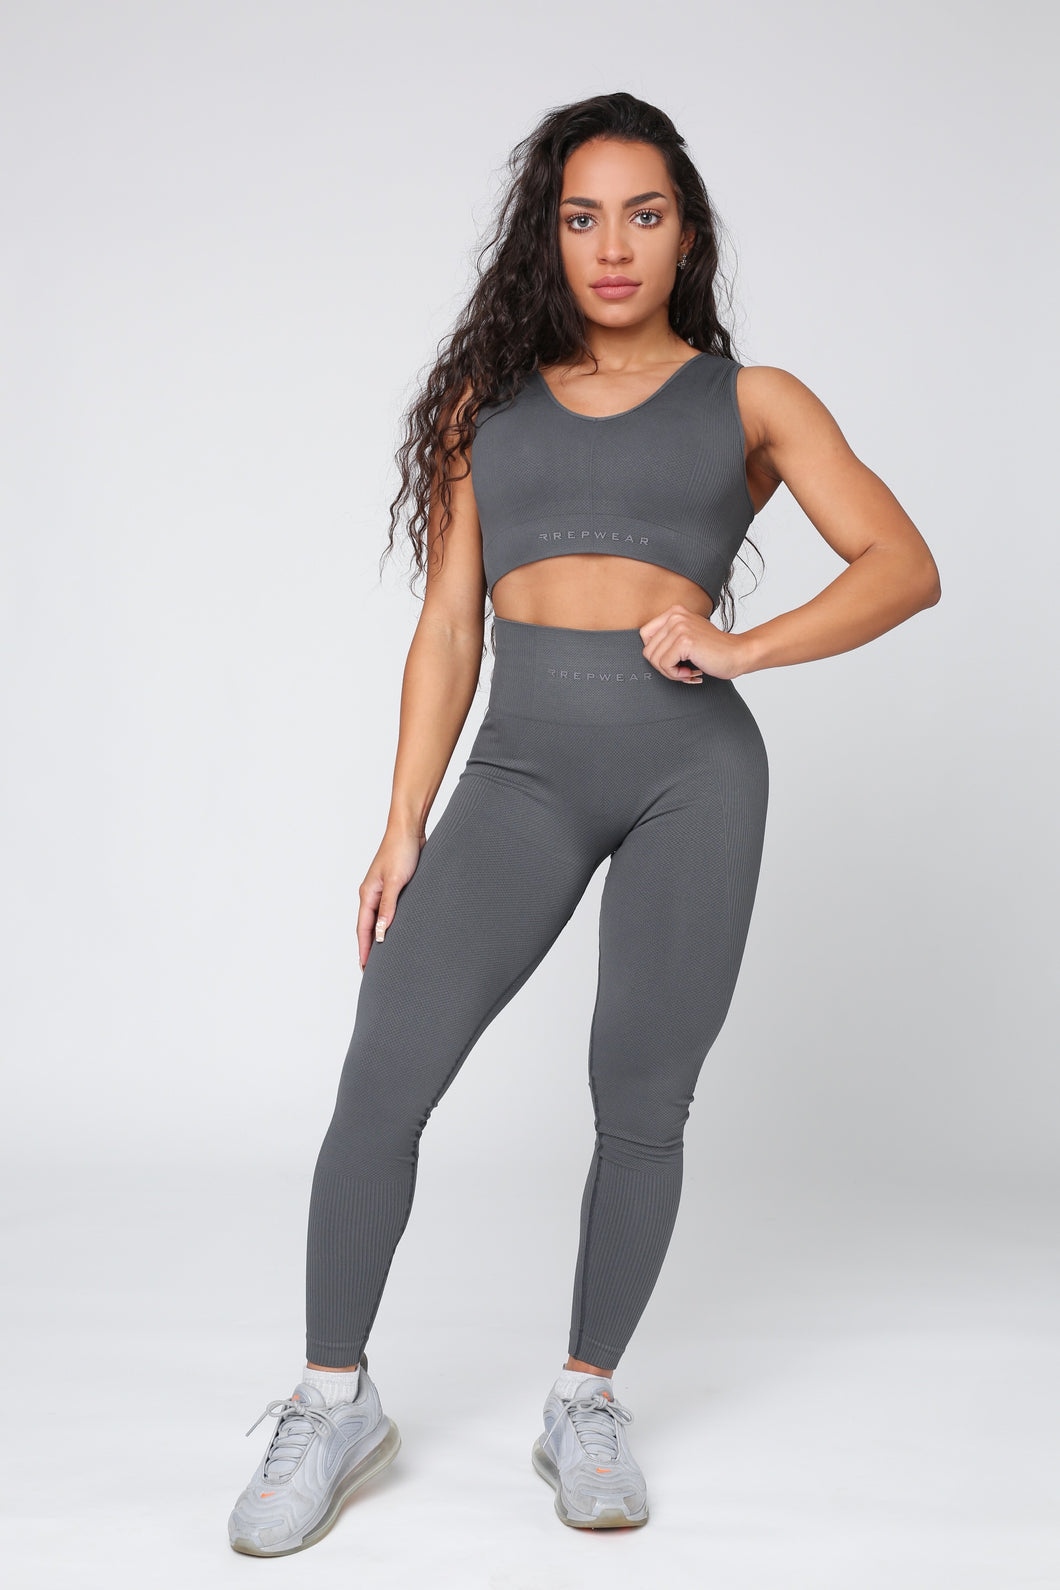 Repwear Fitness ProShape Leggings Grey